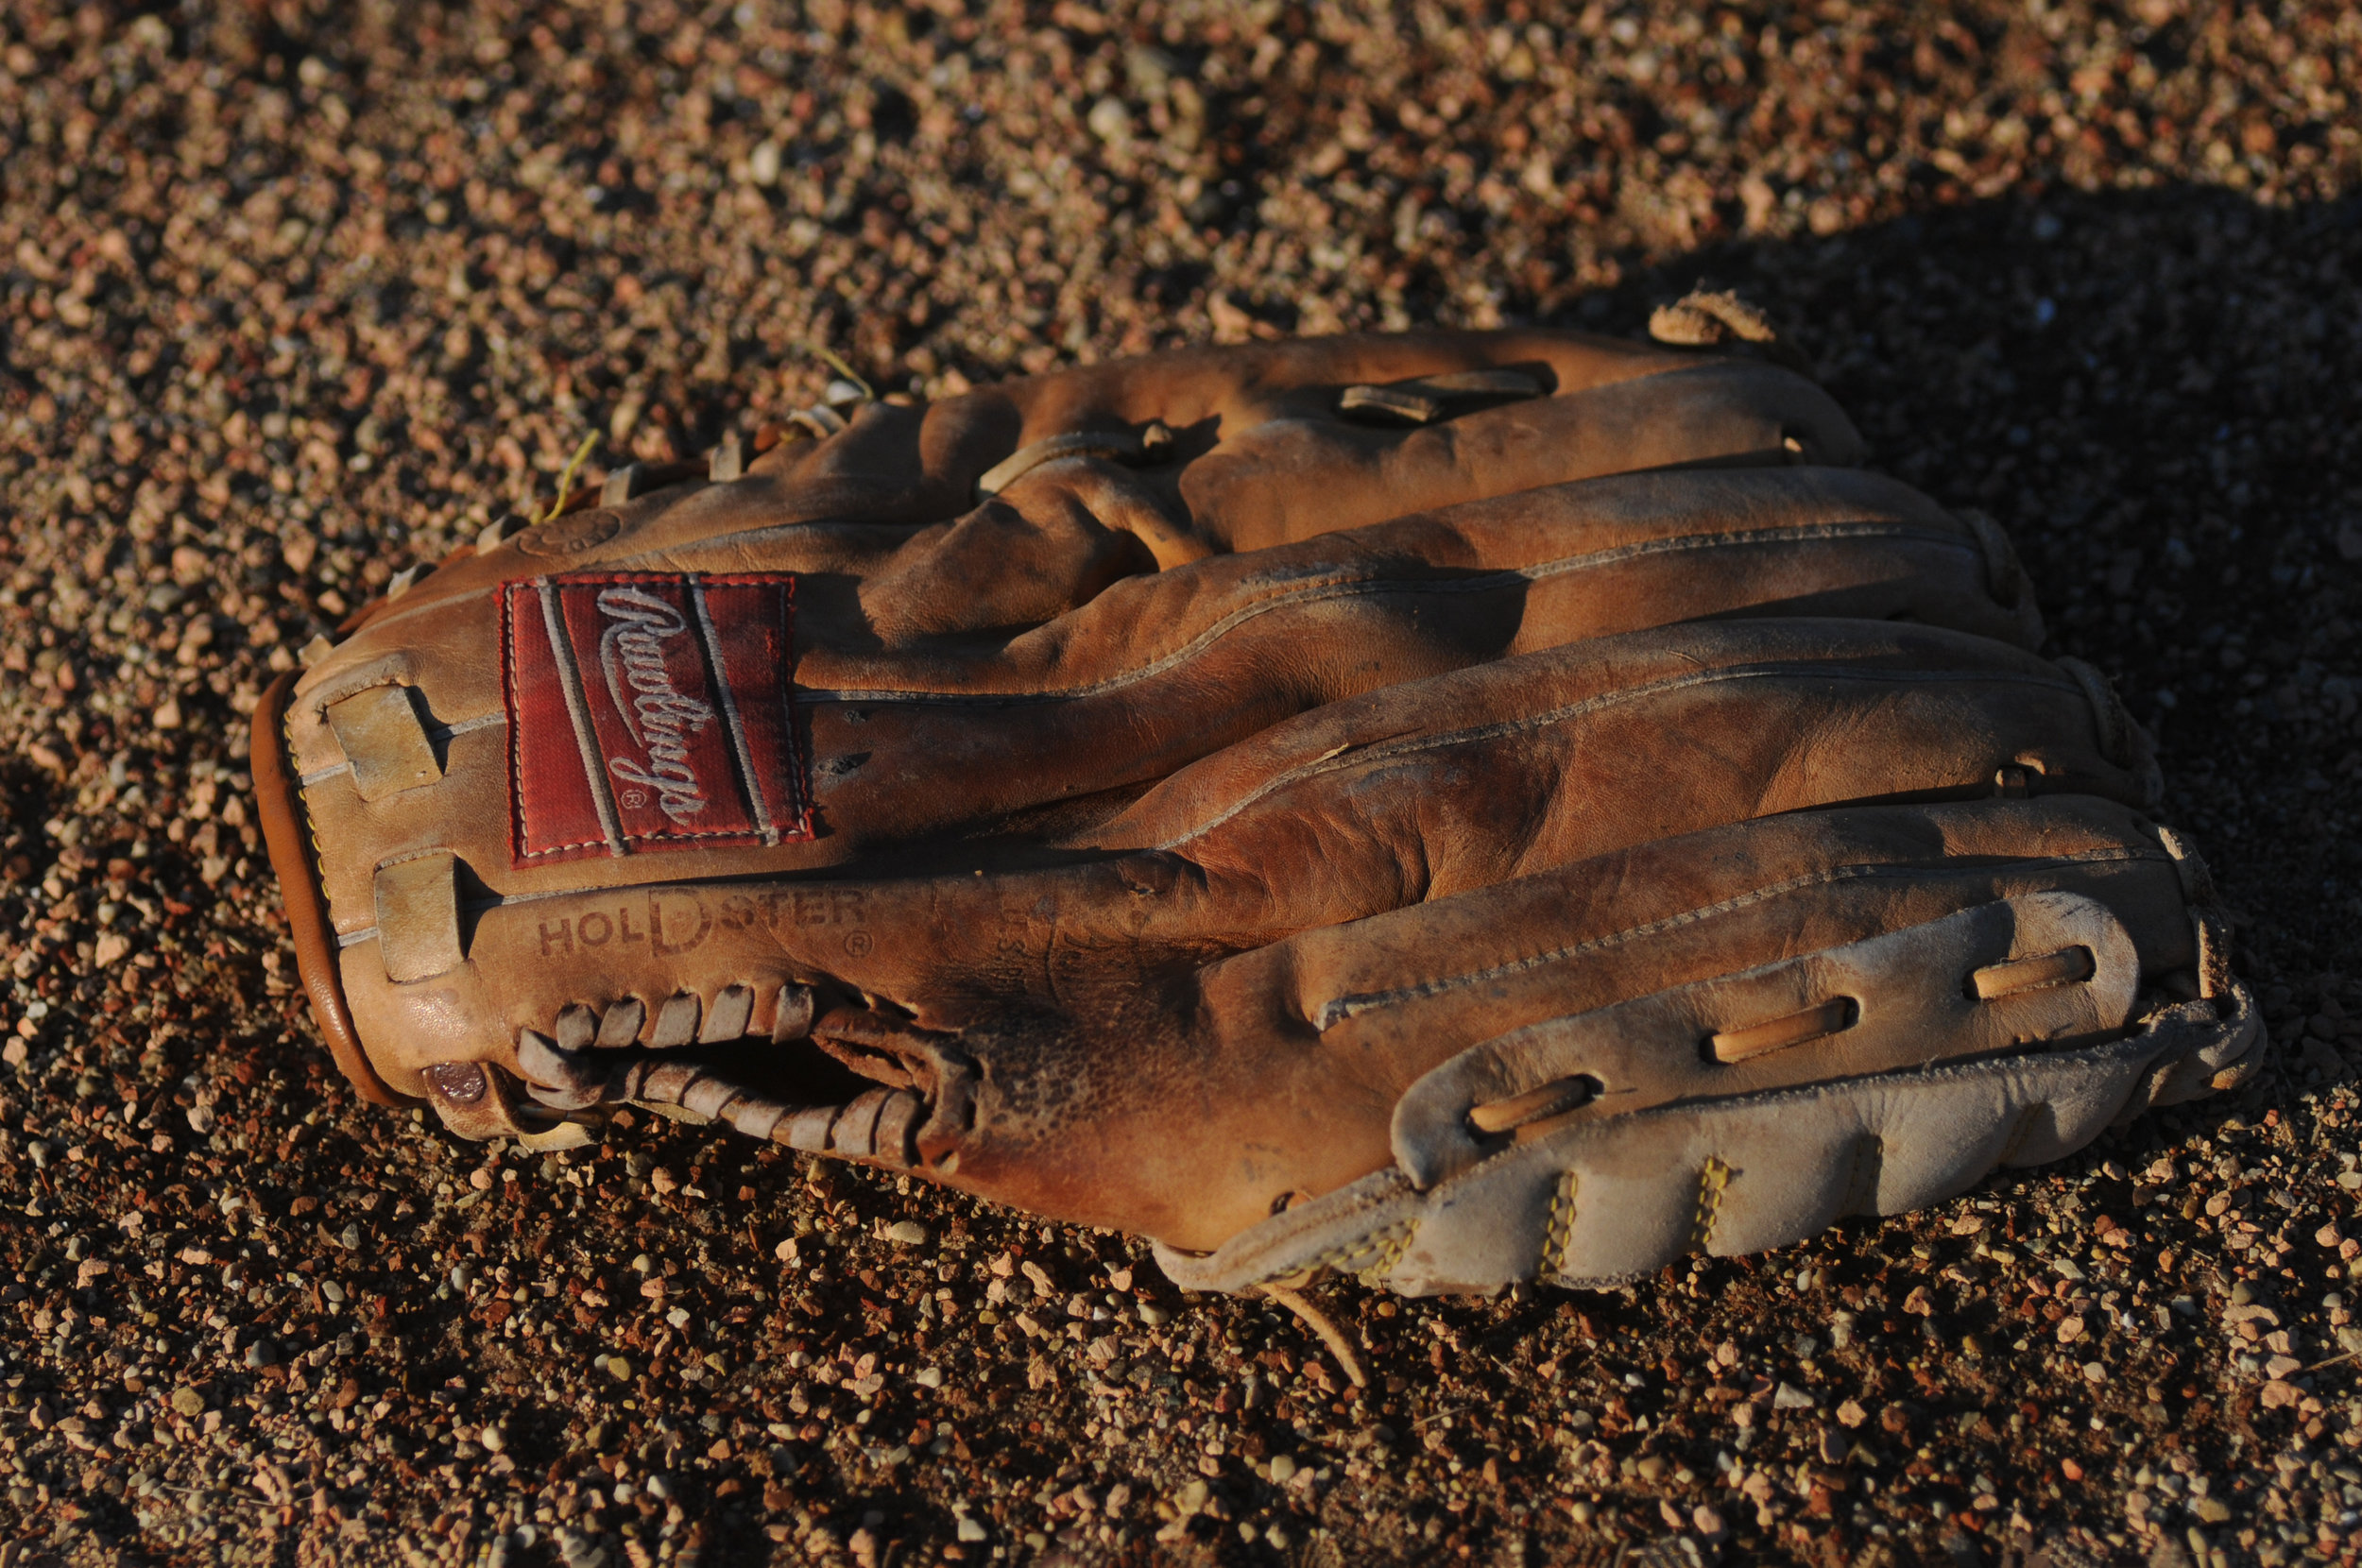 S.B. - My glove works a great deal better after its been Renegaded than before it was Renegaded.